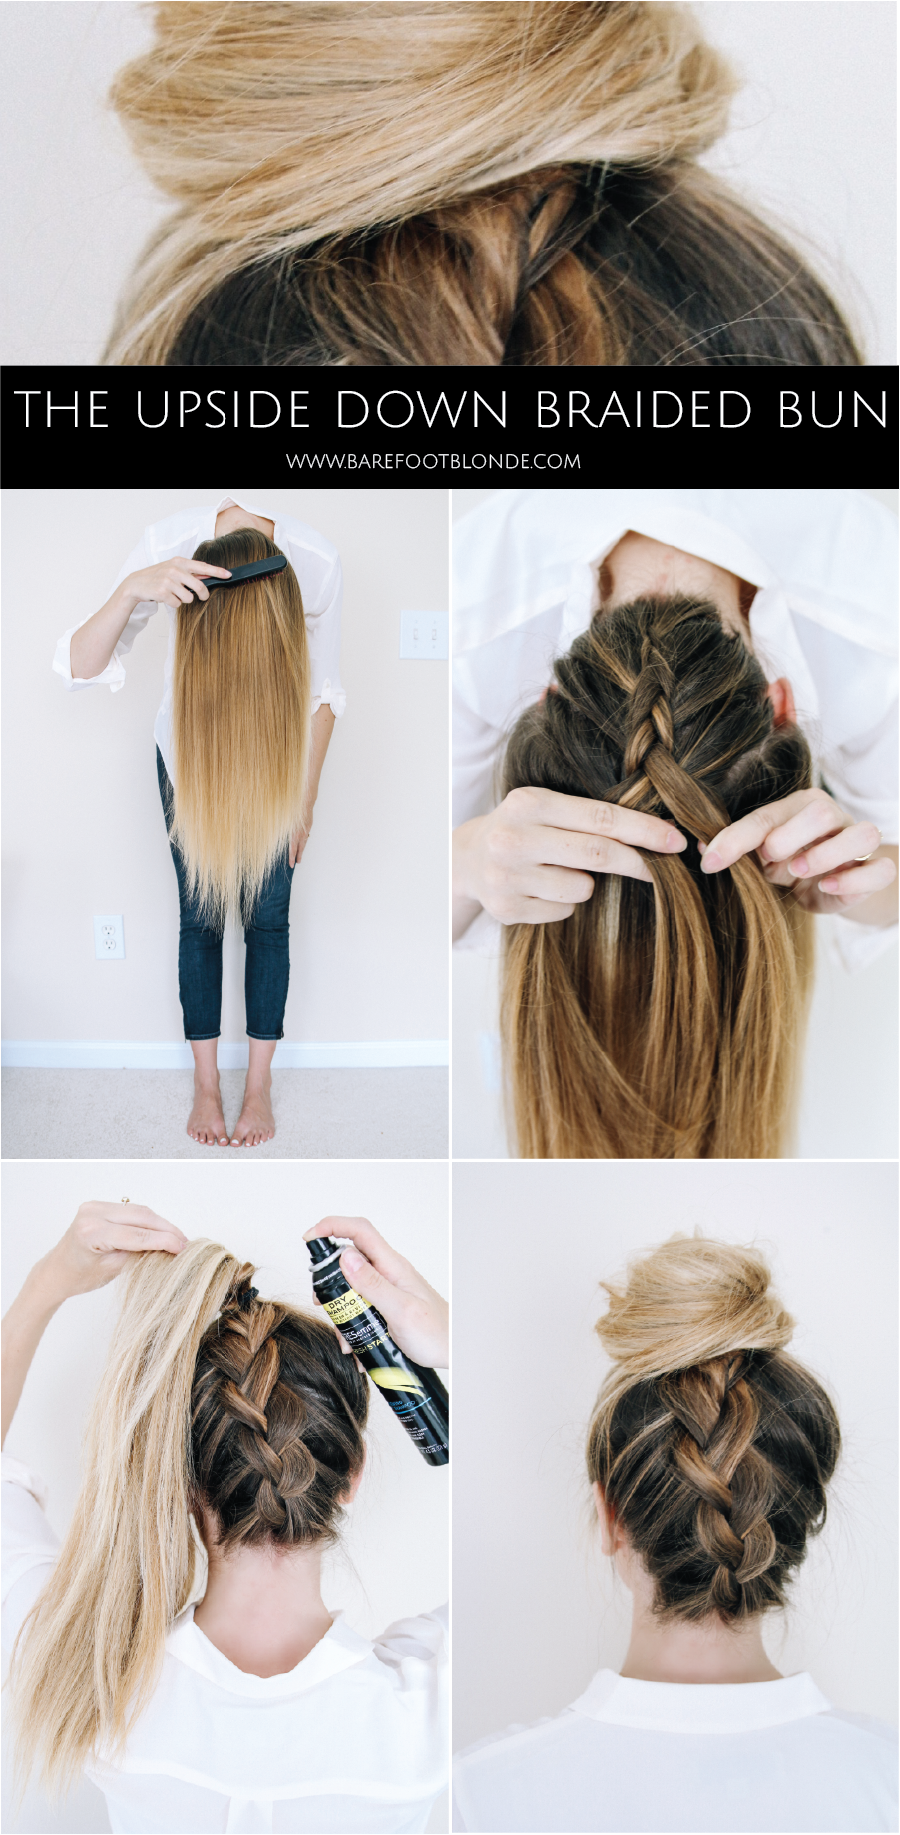 15 Easy Everyday Hairstyles to Try | Pinterest | Easy everyday ...